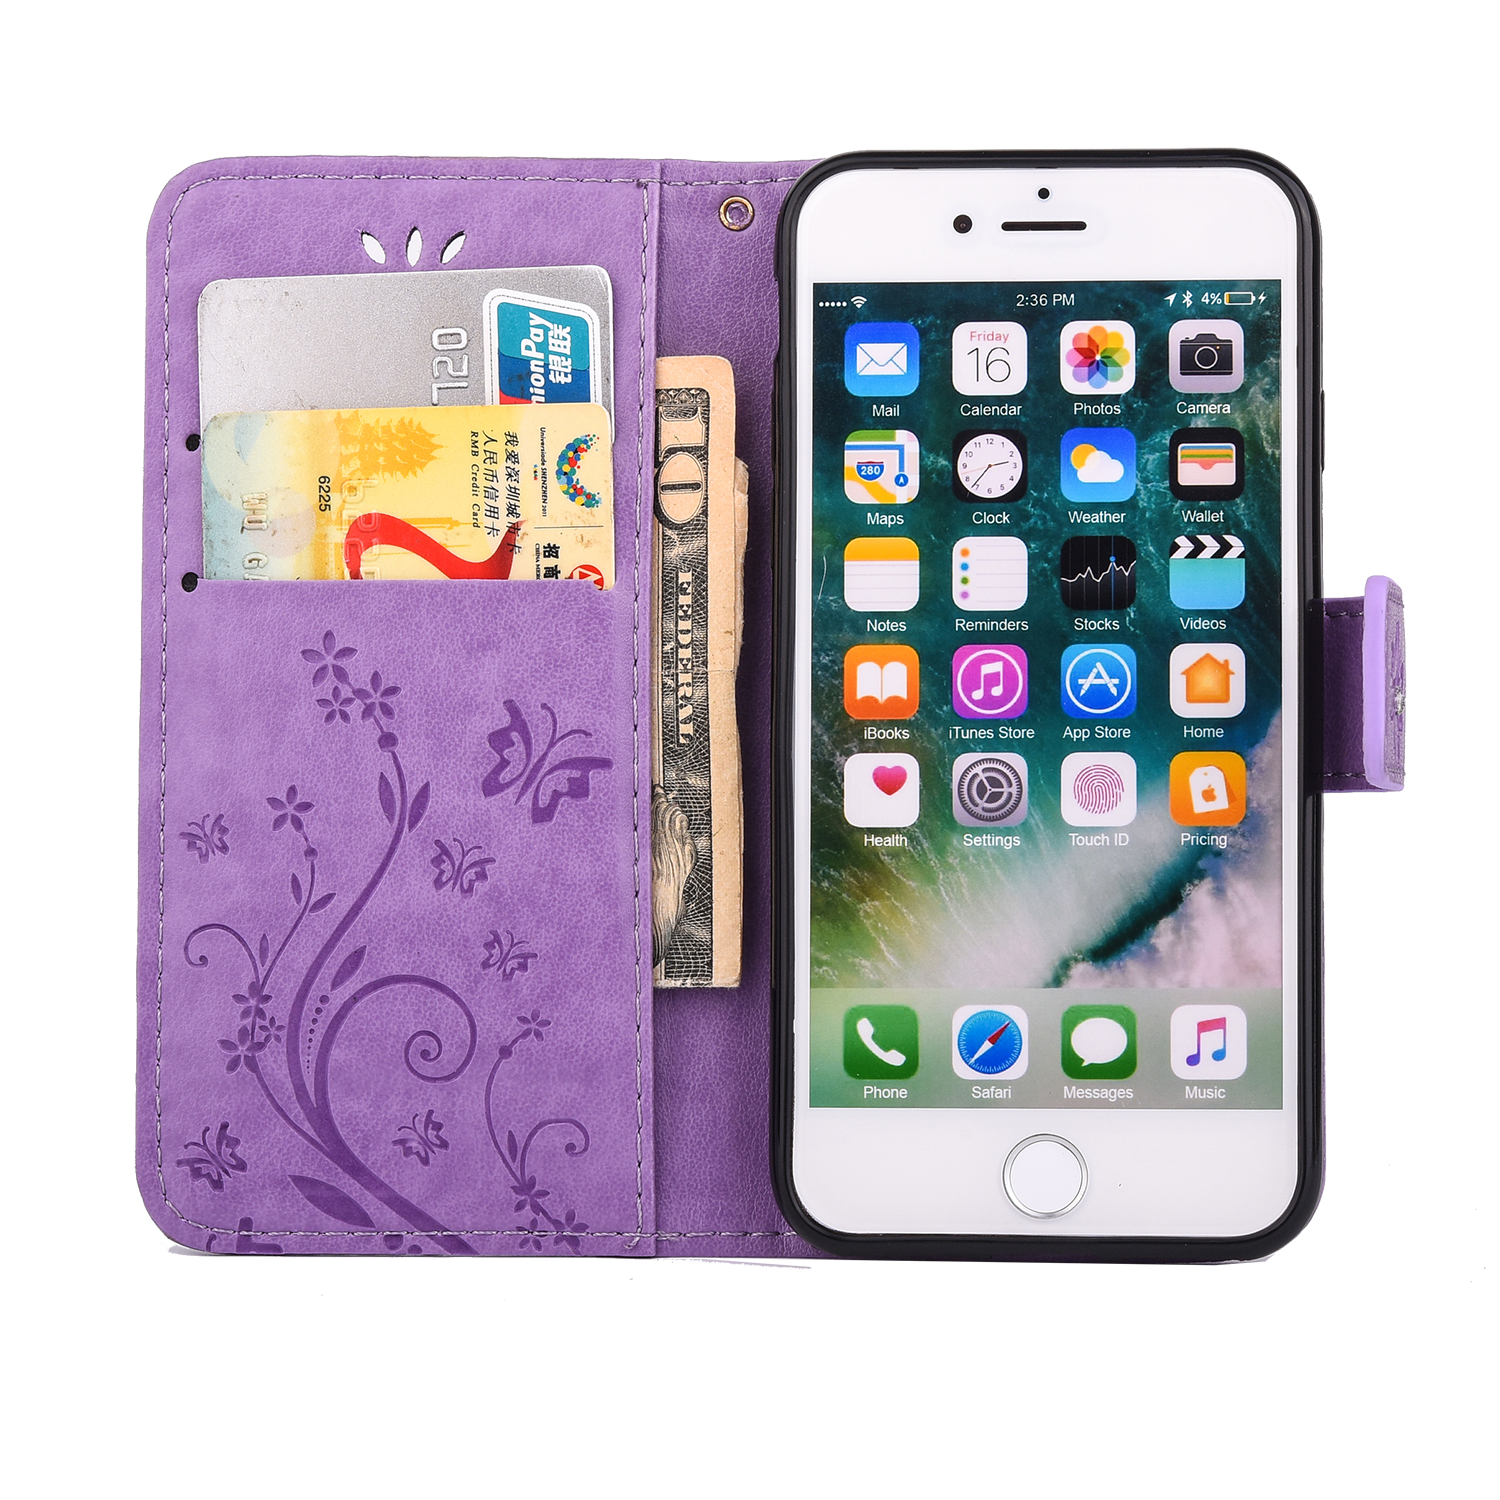 Magnetic-Flip-Leather-Stand-Card-Diamond-Wallet-Case-Cover-For-iPhone-6s-7-Plus